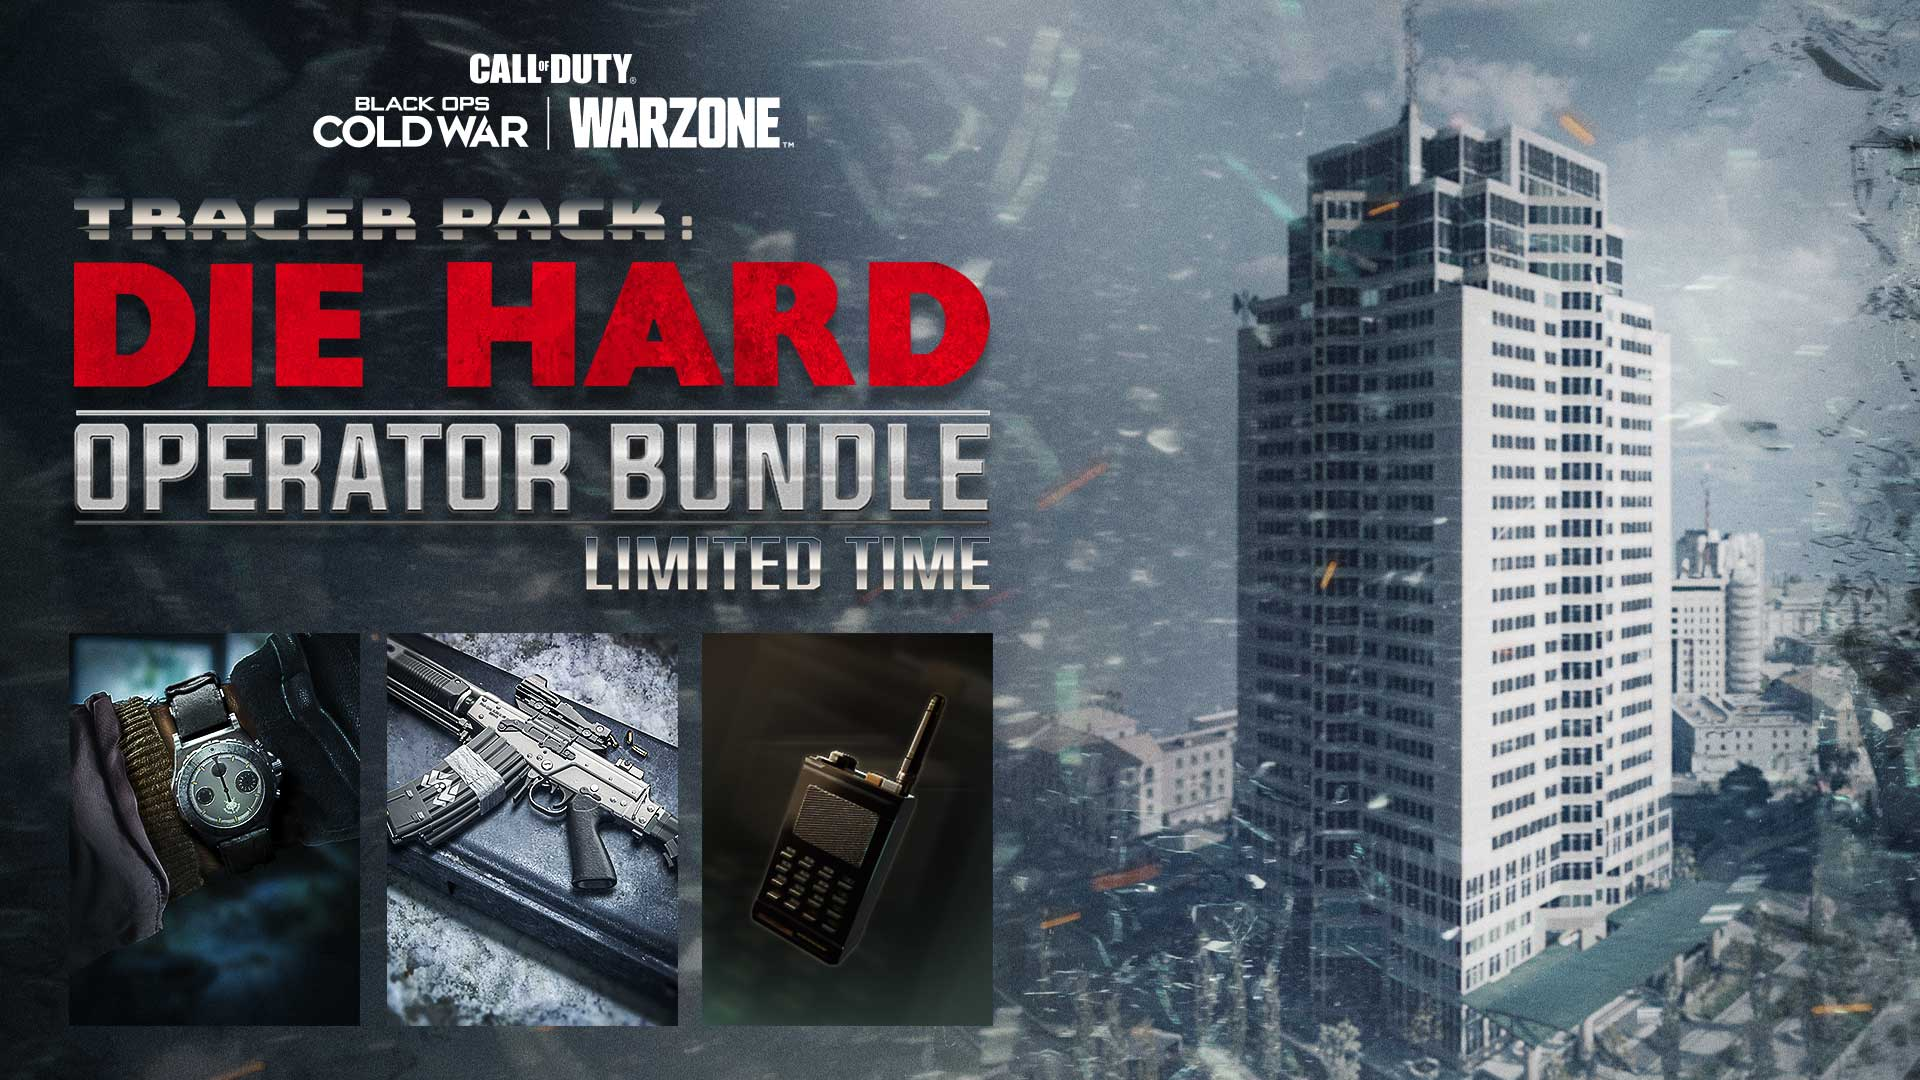 john-mcclane-skin-operateur-pack-warzone-cold-war-call-of-duty